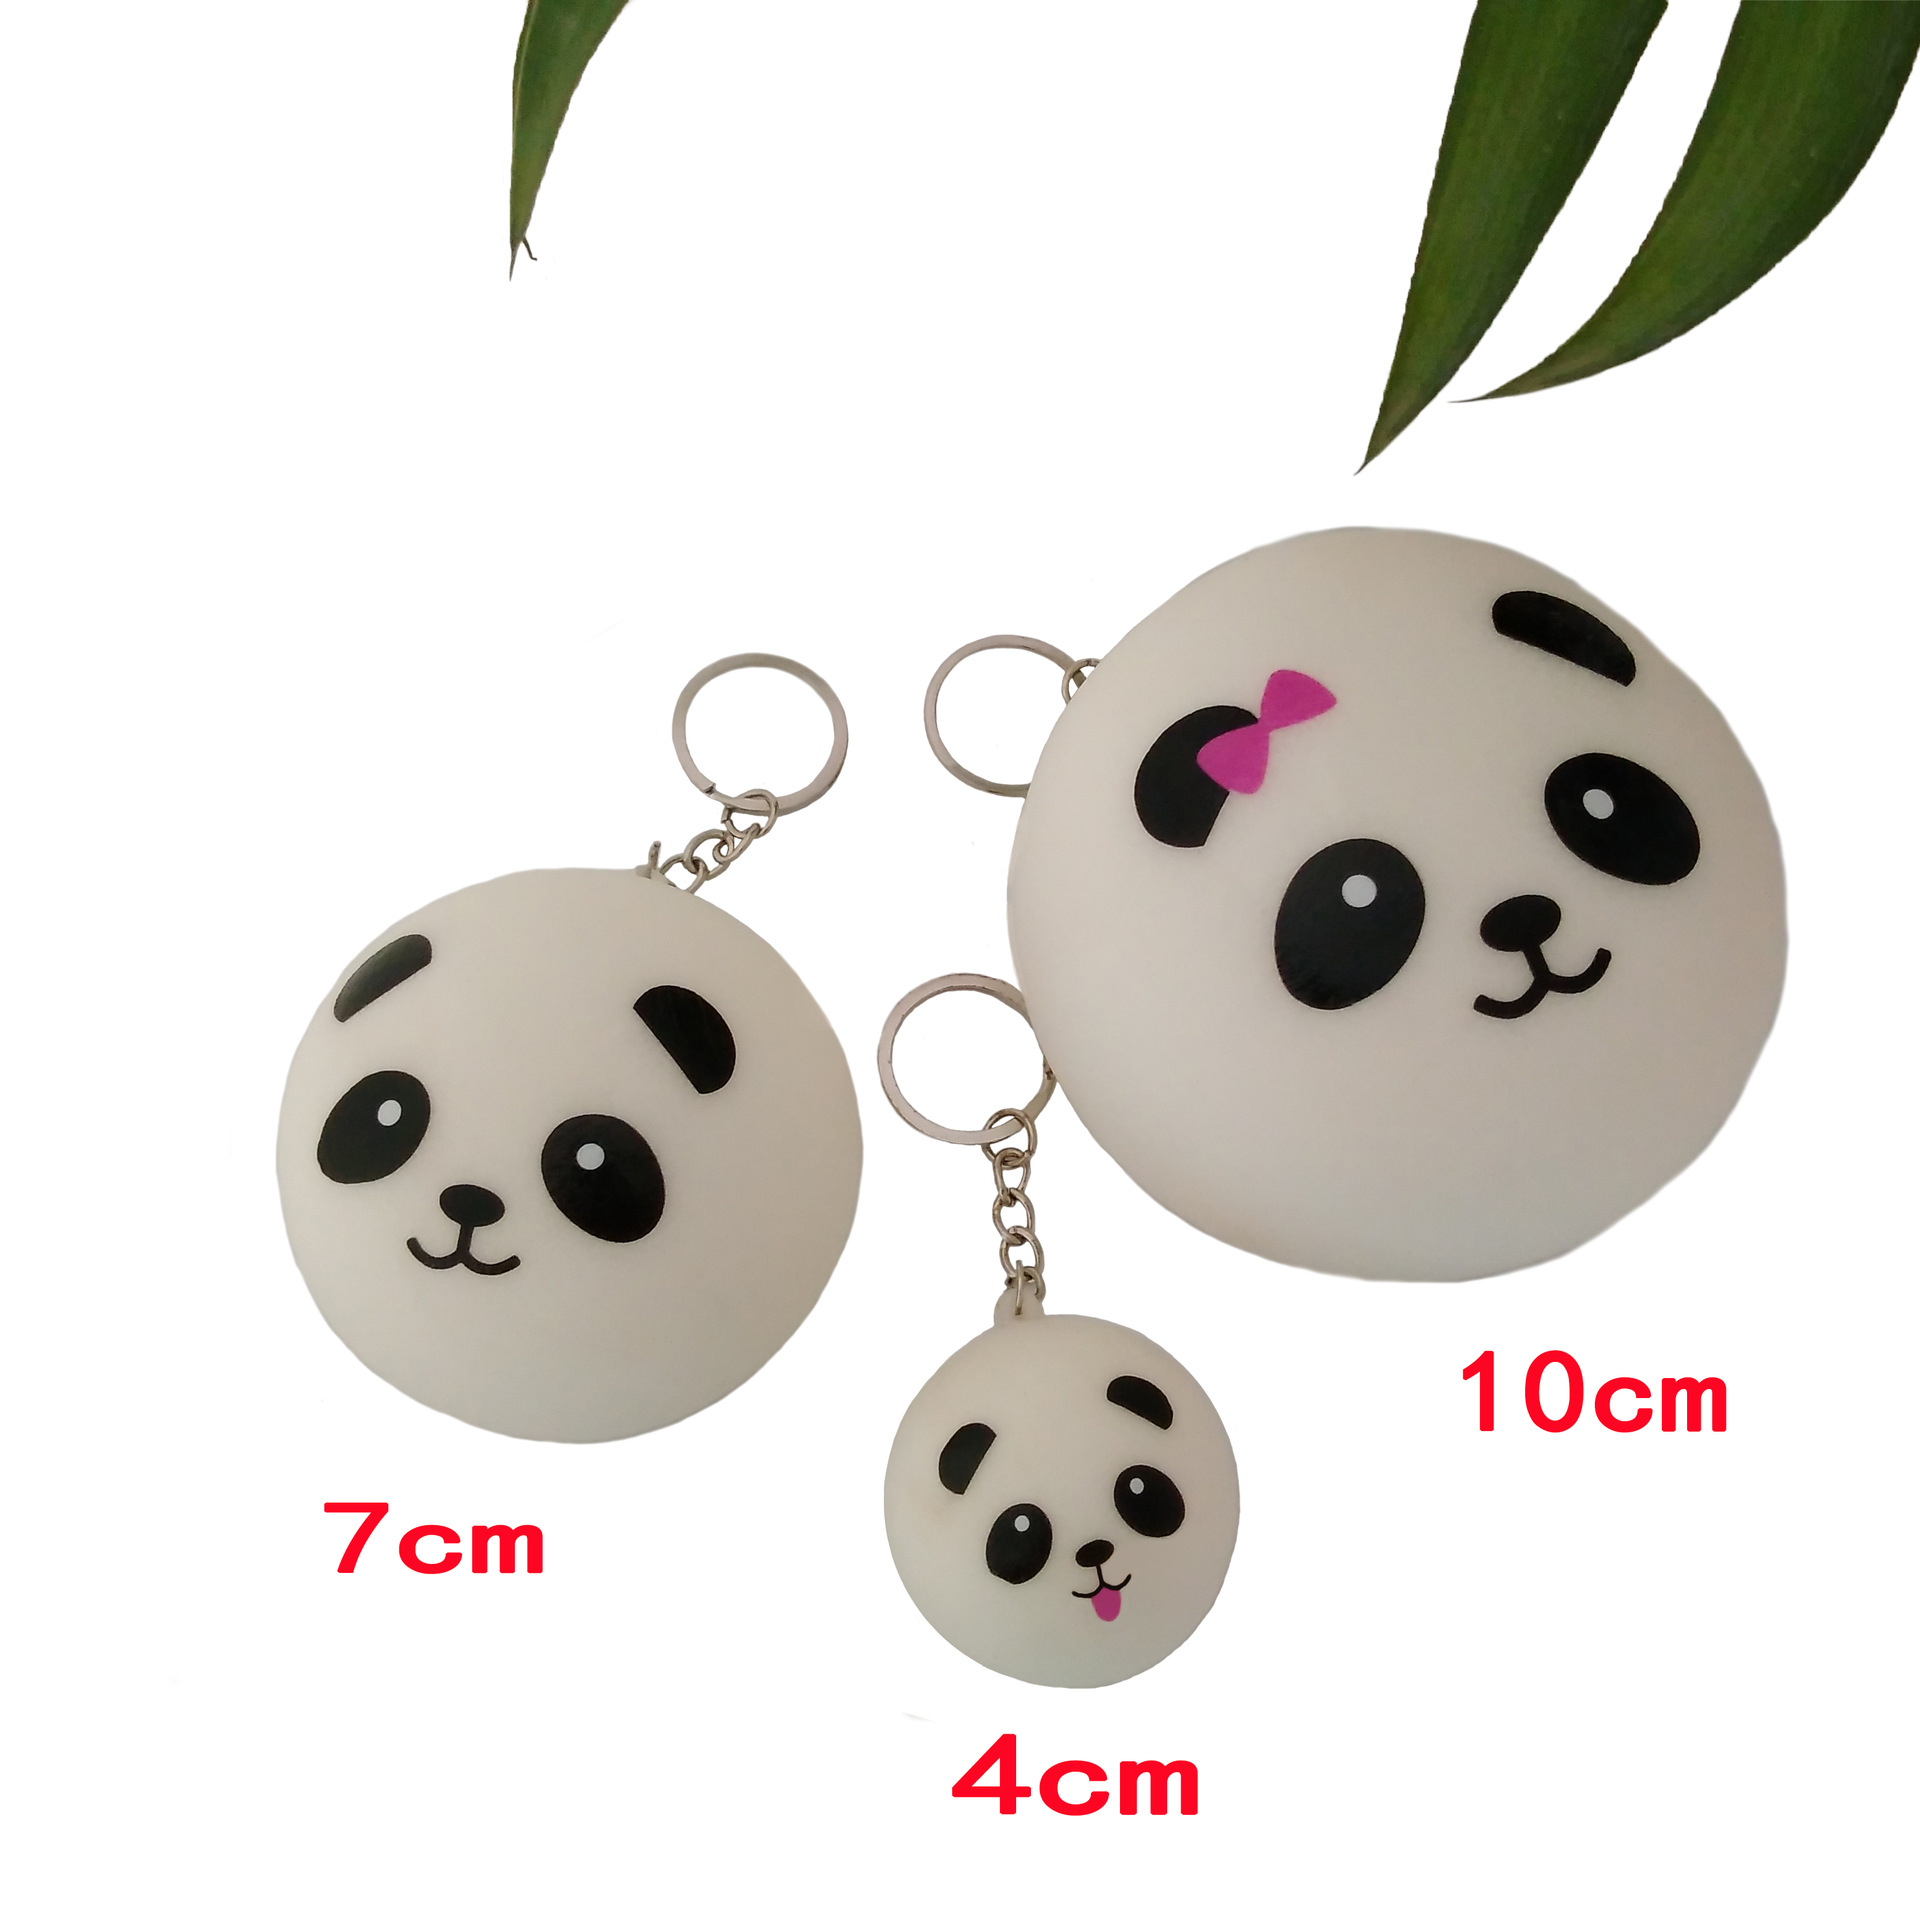 1pcs Panda Squishy Stress Relief Squeeze Toy For Children Adult Decompression Ball Fun Antistress Birthday Xmas Funny Cat Banana